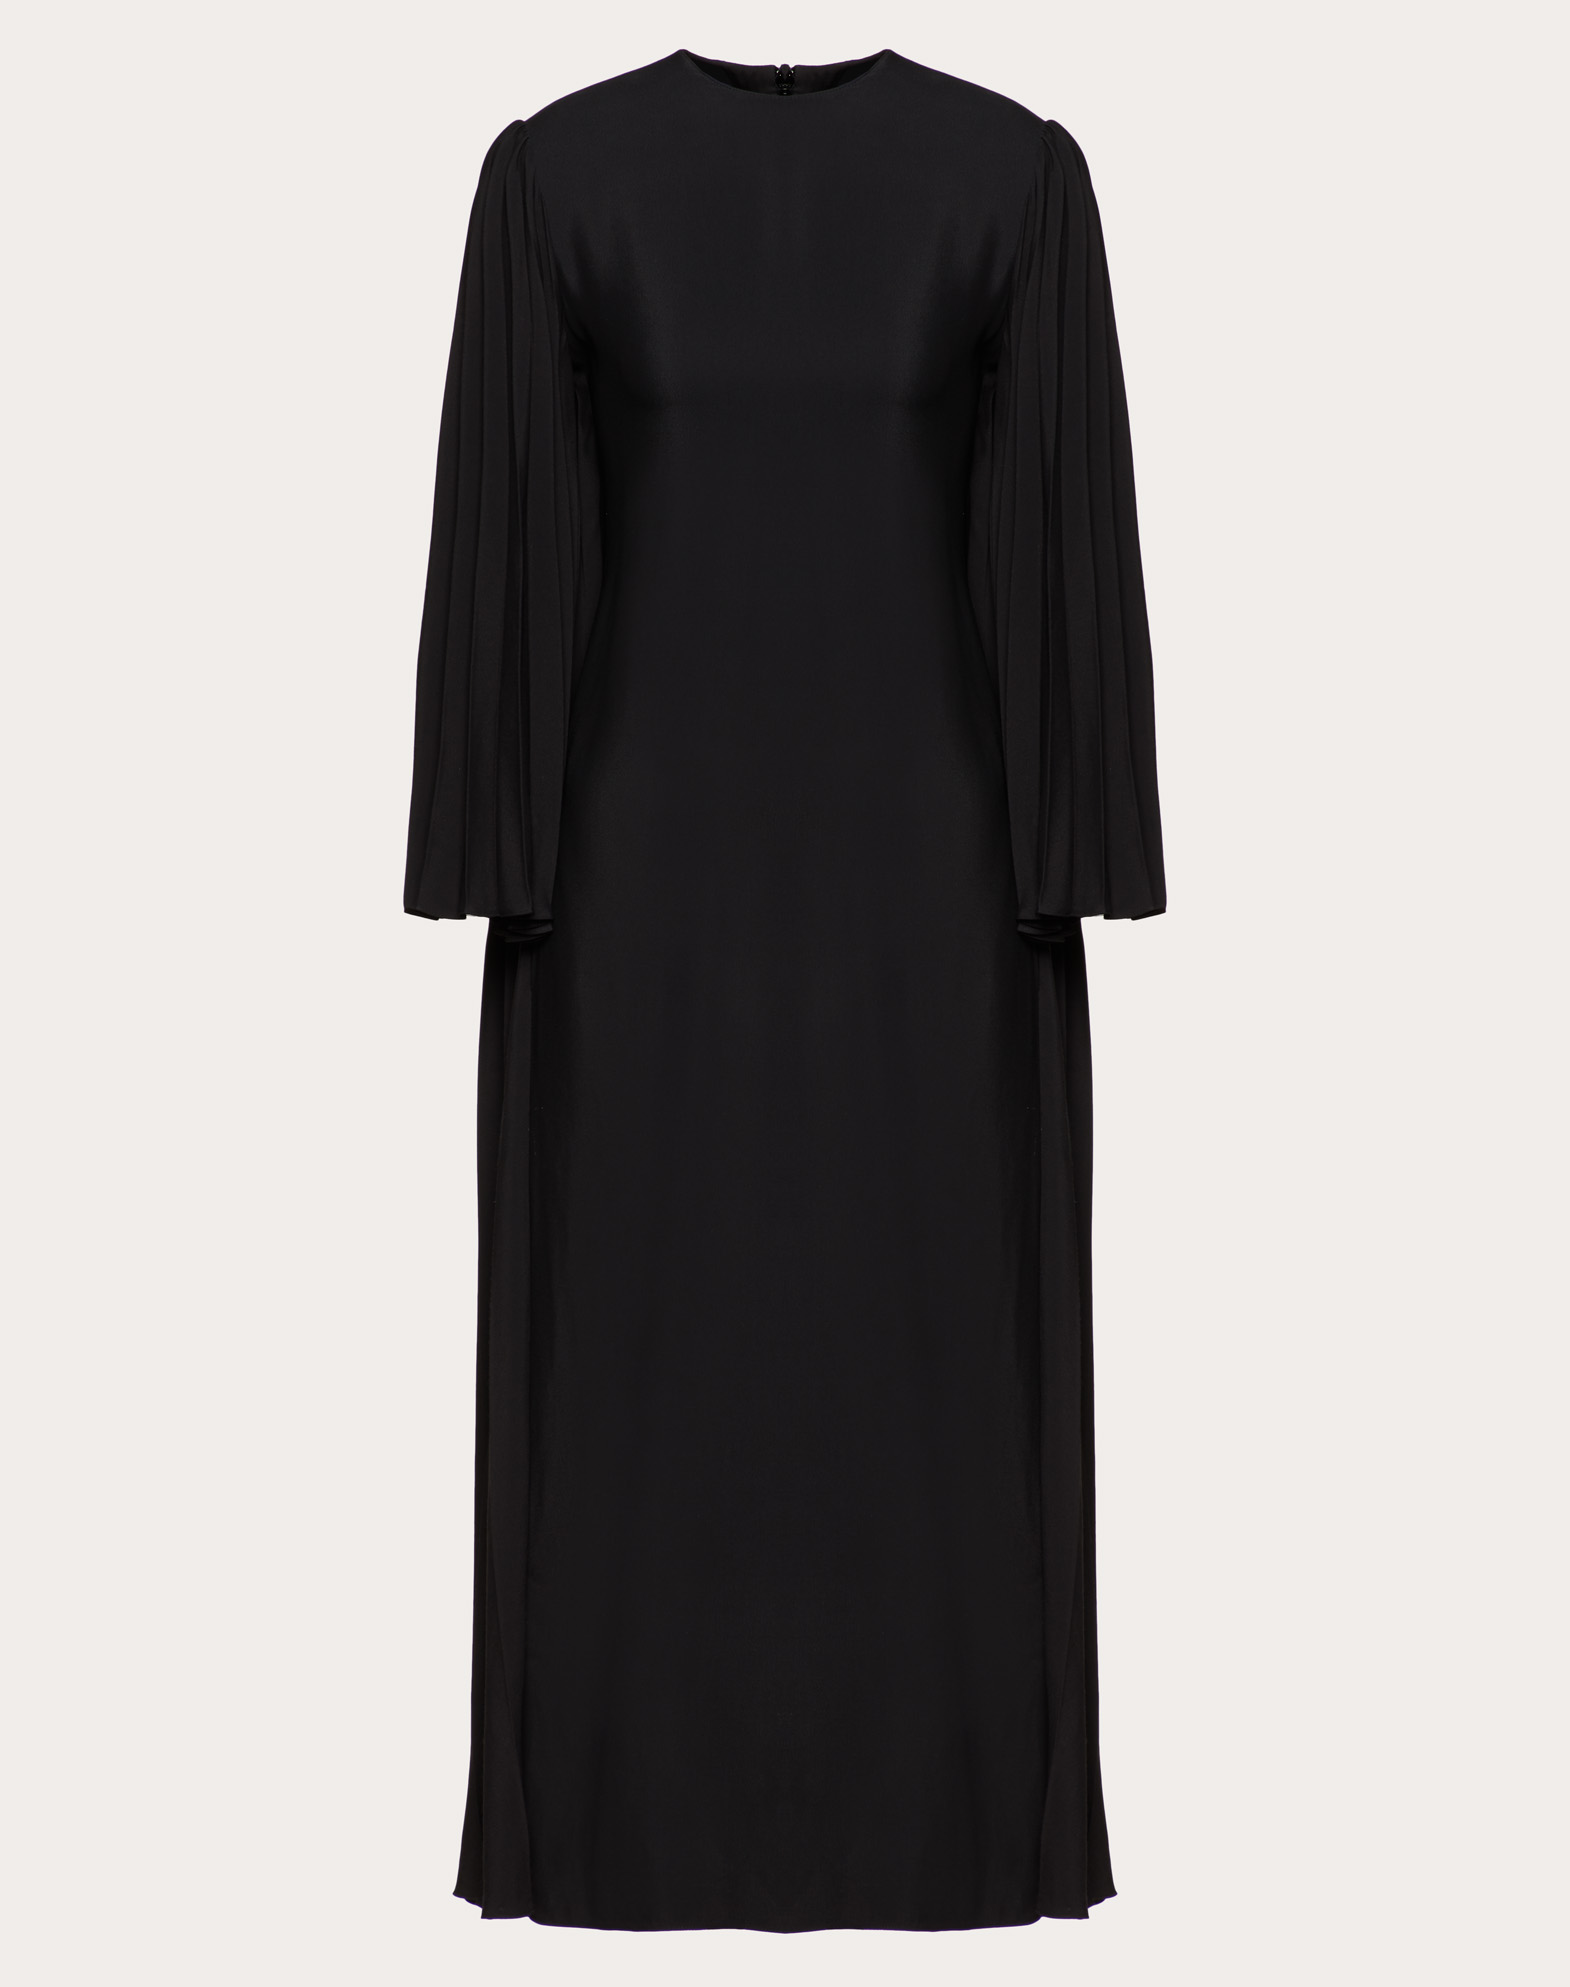 DOUBLE-FACED VISCOSE PLEATED DRESS